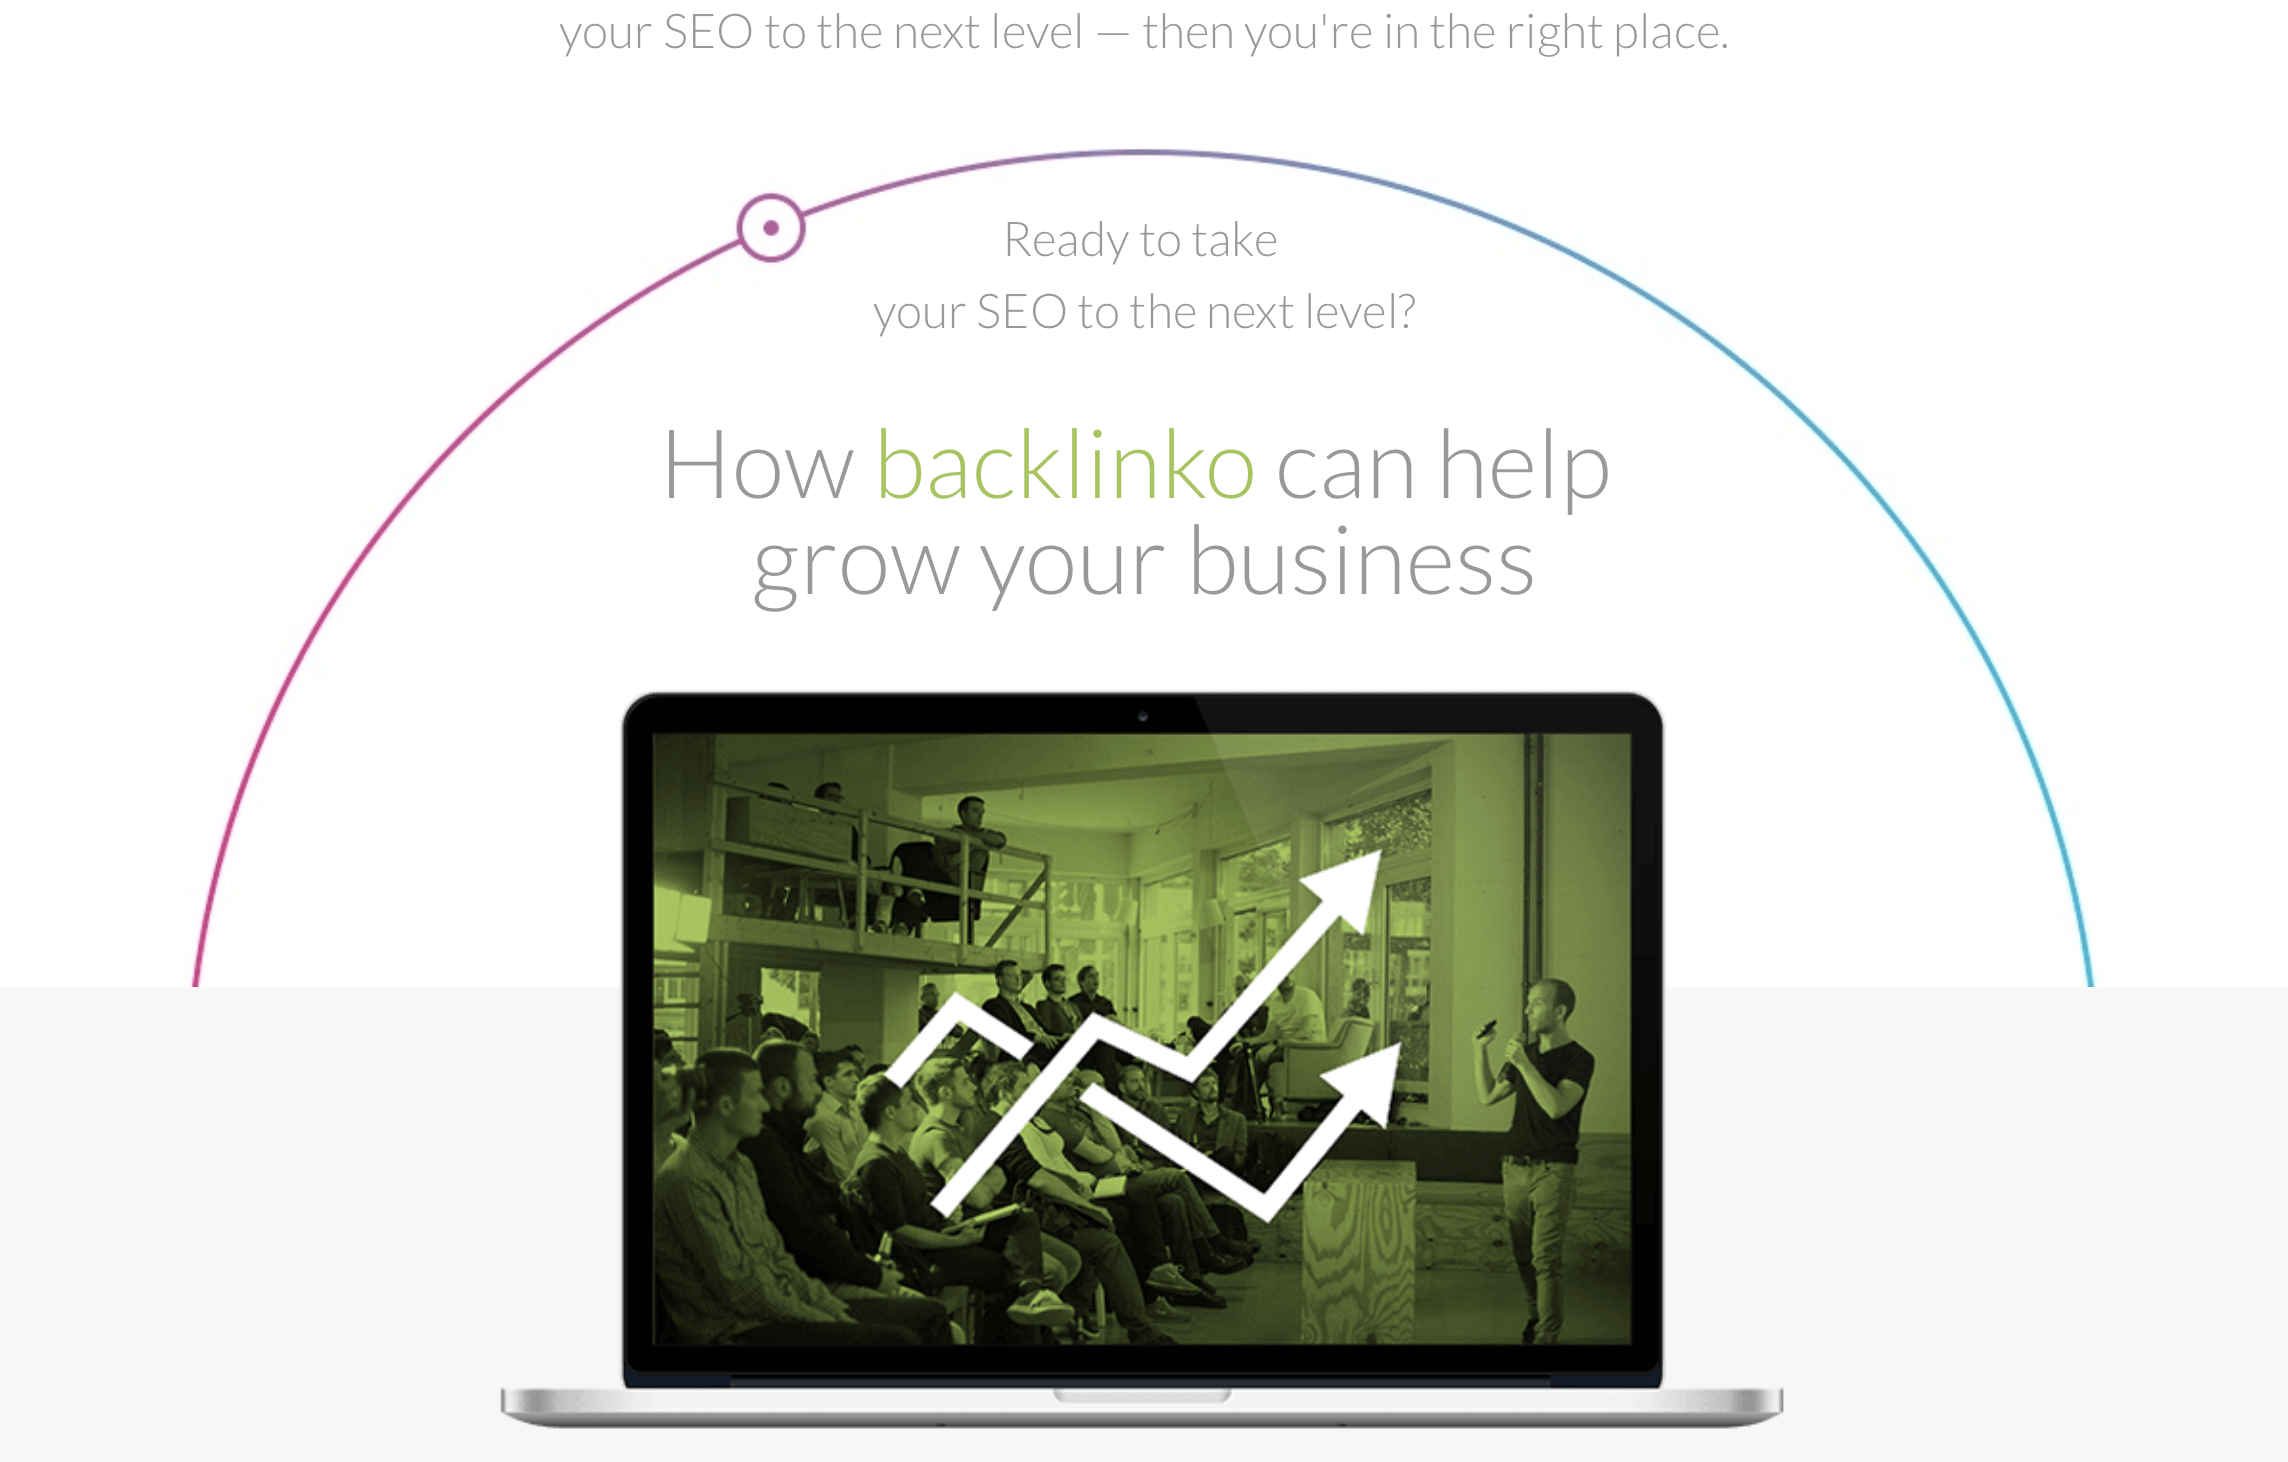 A great about us page from Backlinko